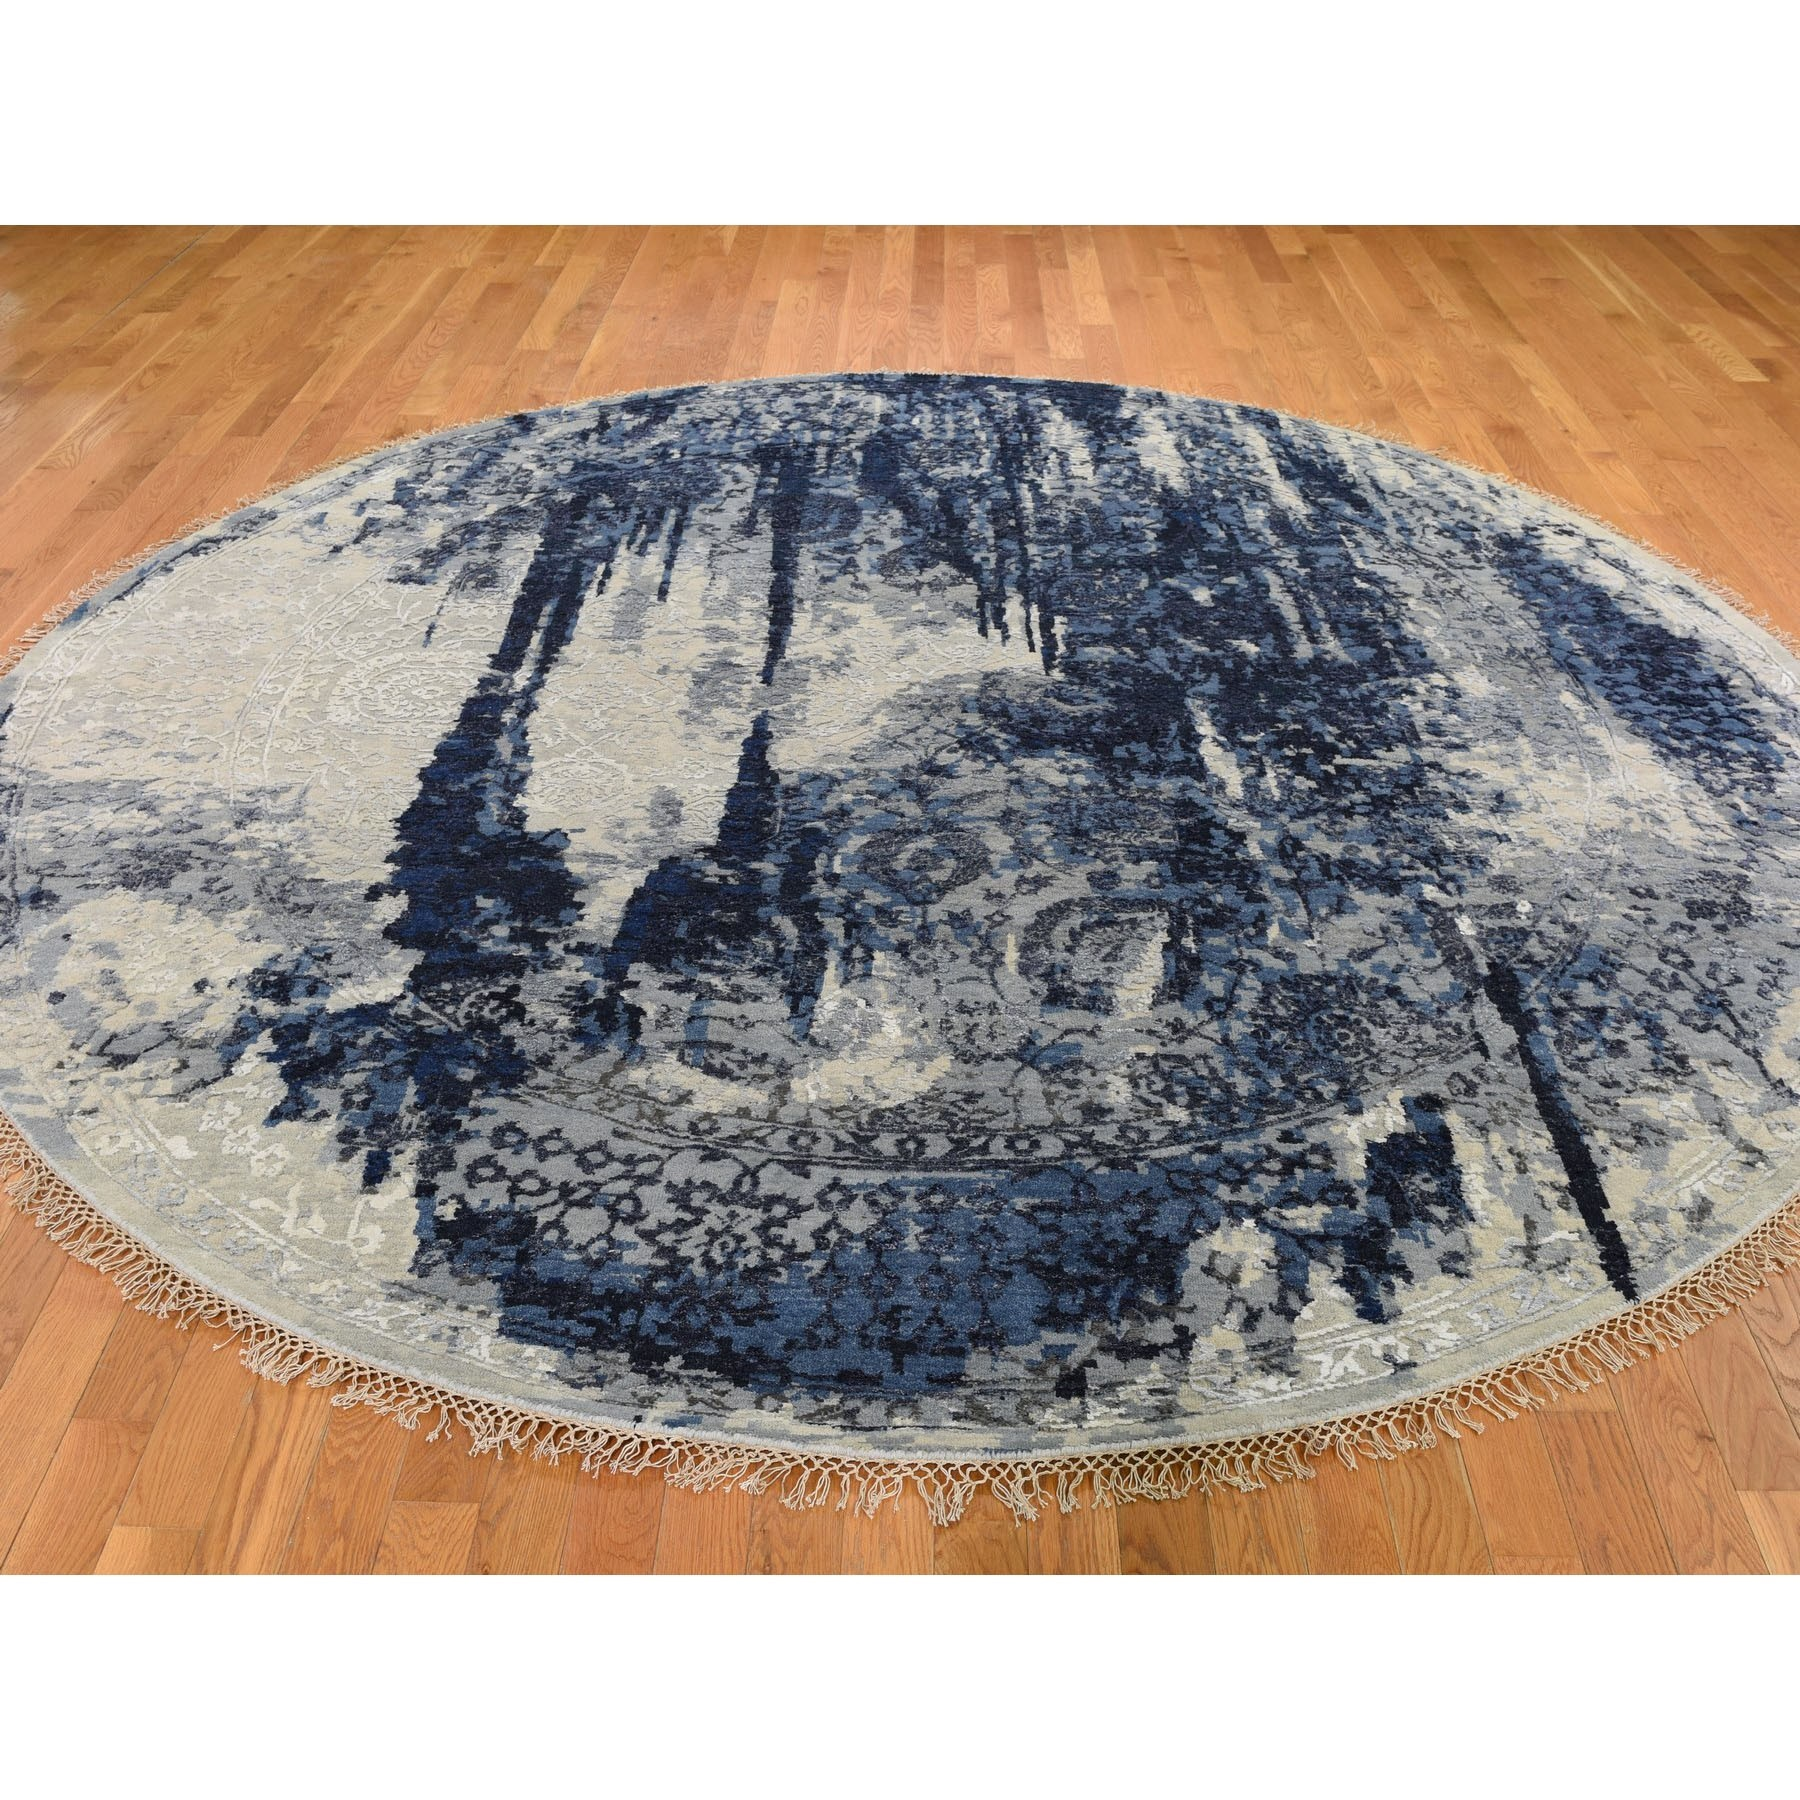 "9'8""x9'8"" Round Wool And Silk Shibori Design Tone On Tone Hand Knotted Oriental Rug"